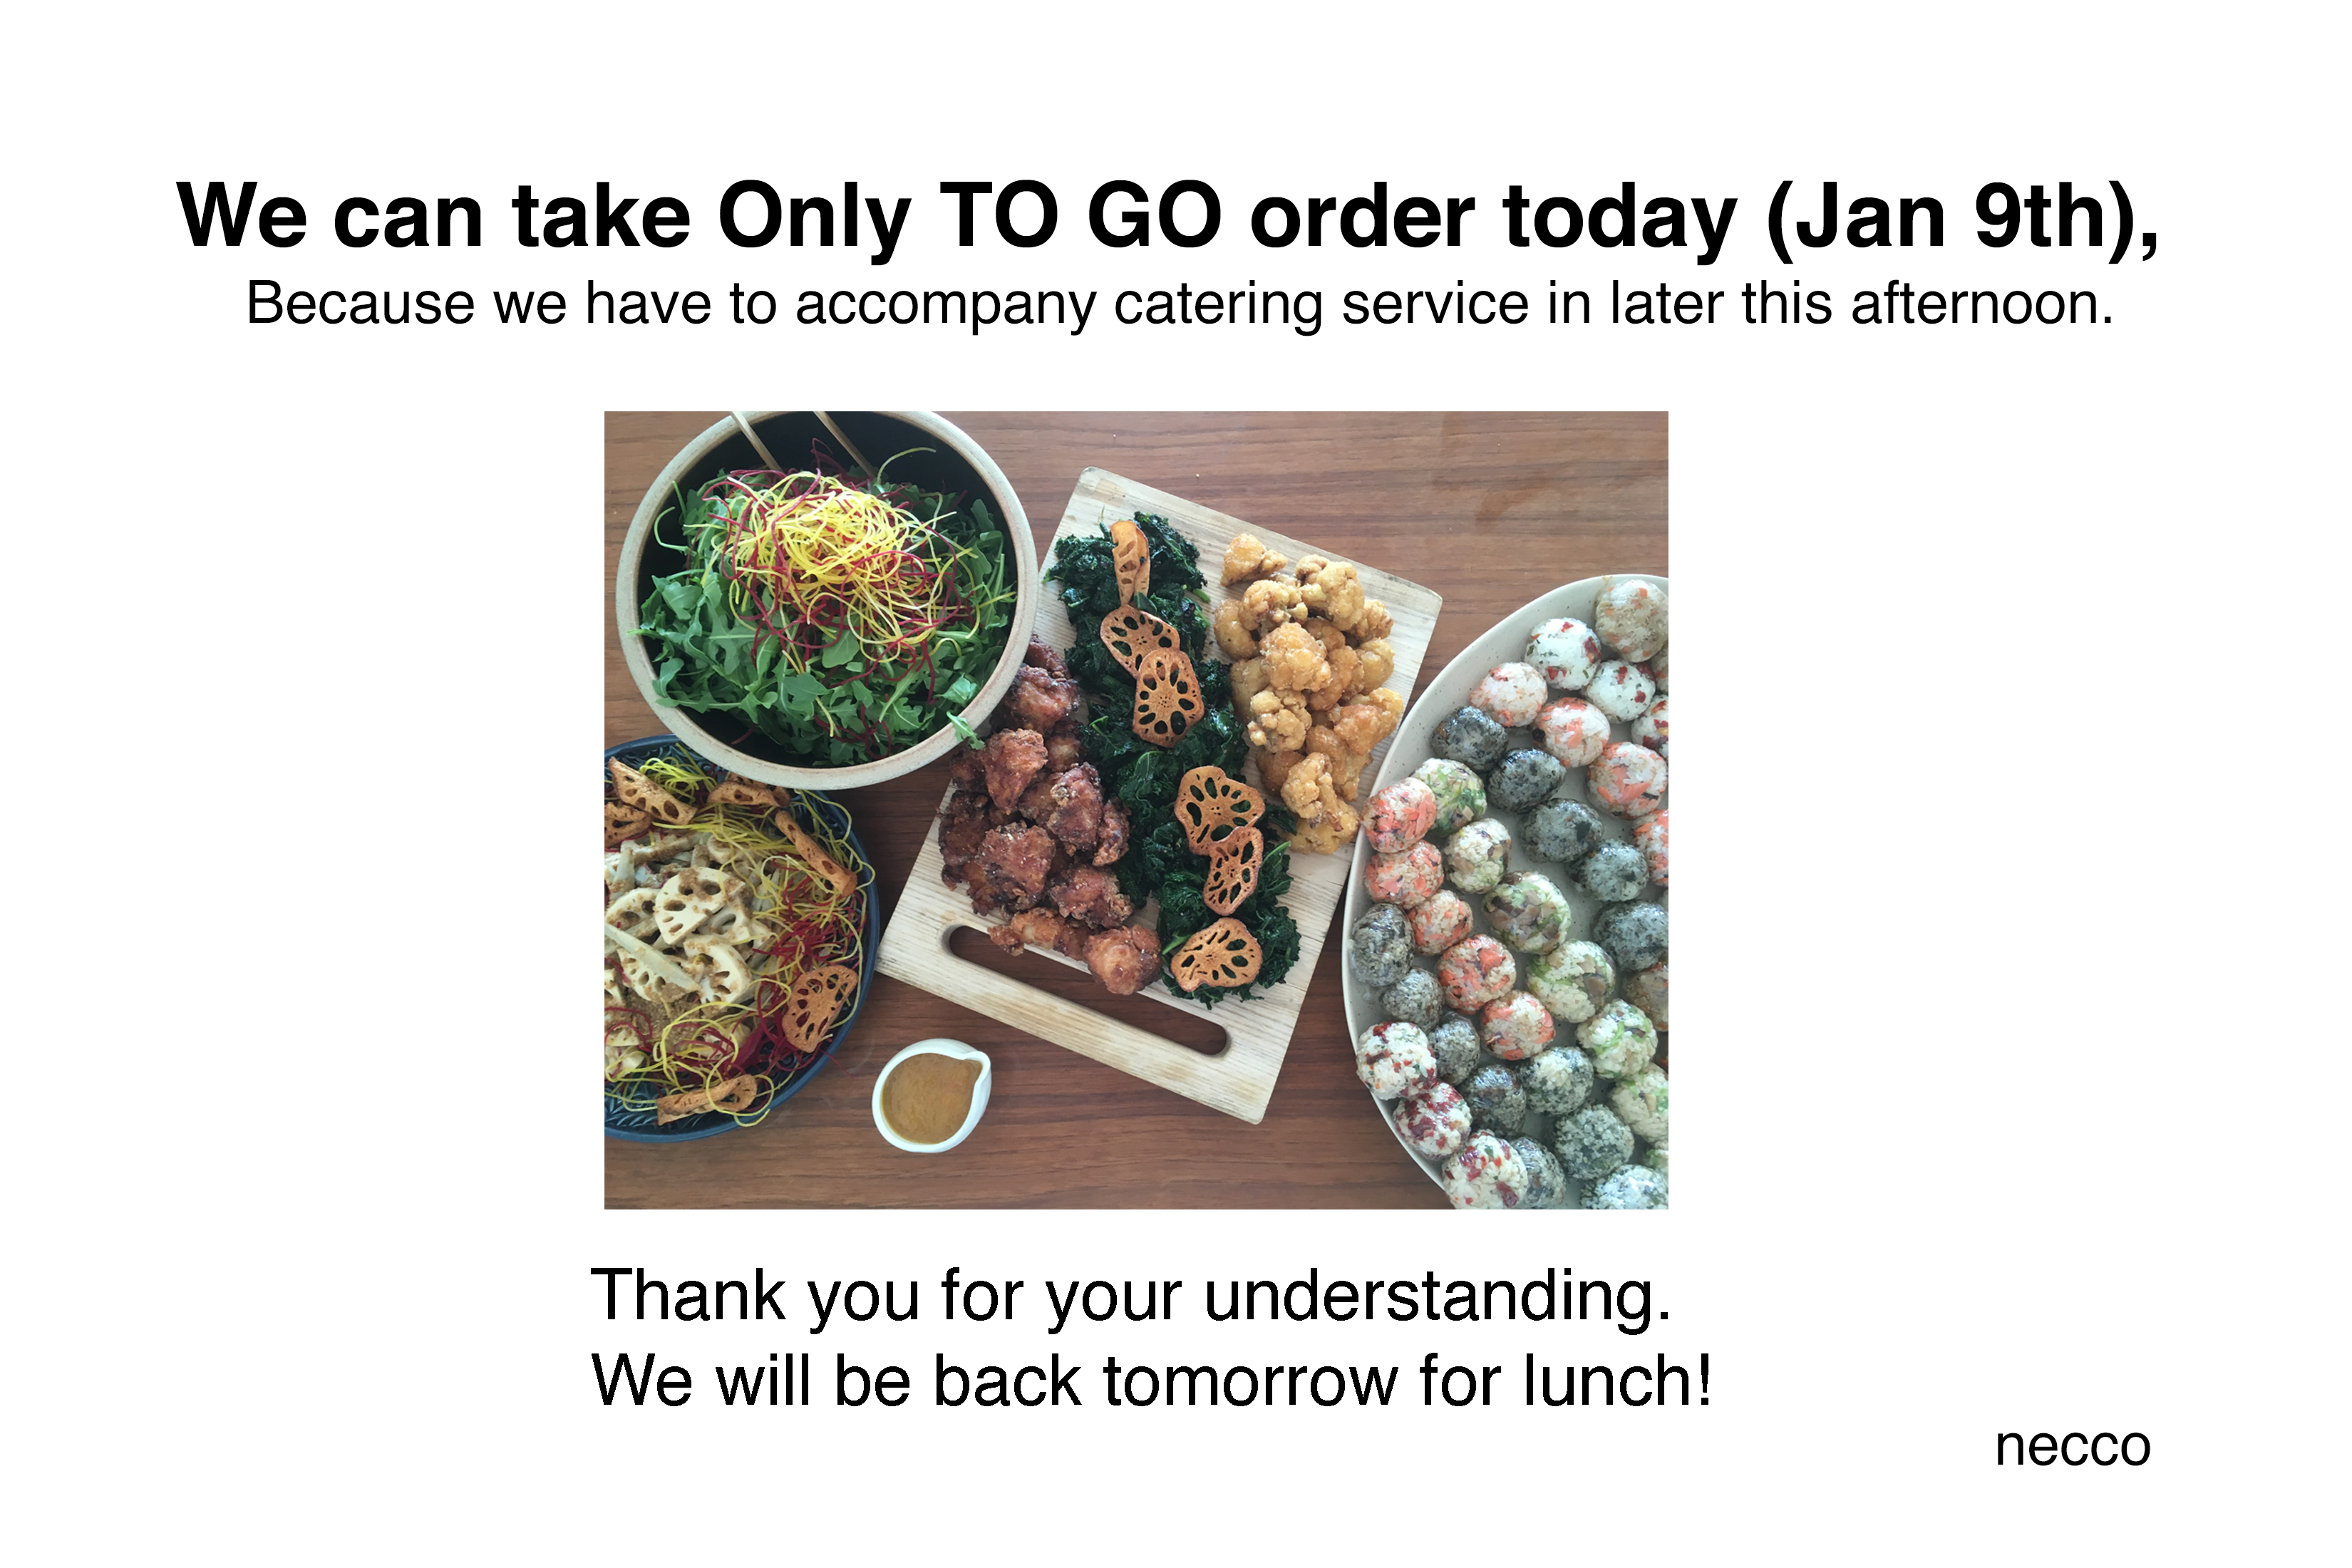 0e8179c05 We can take only TO GO order today ( Jan 9th) | necco - Japanese tapas  restaurantnecco – Japanese tapas restaurant